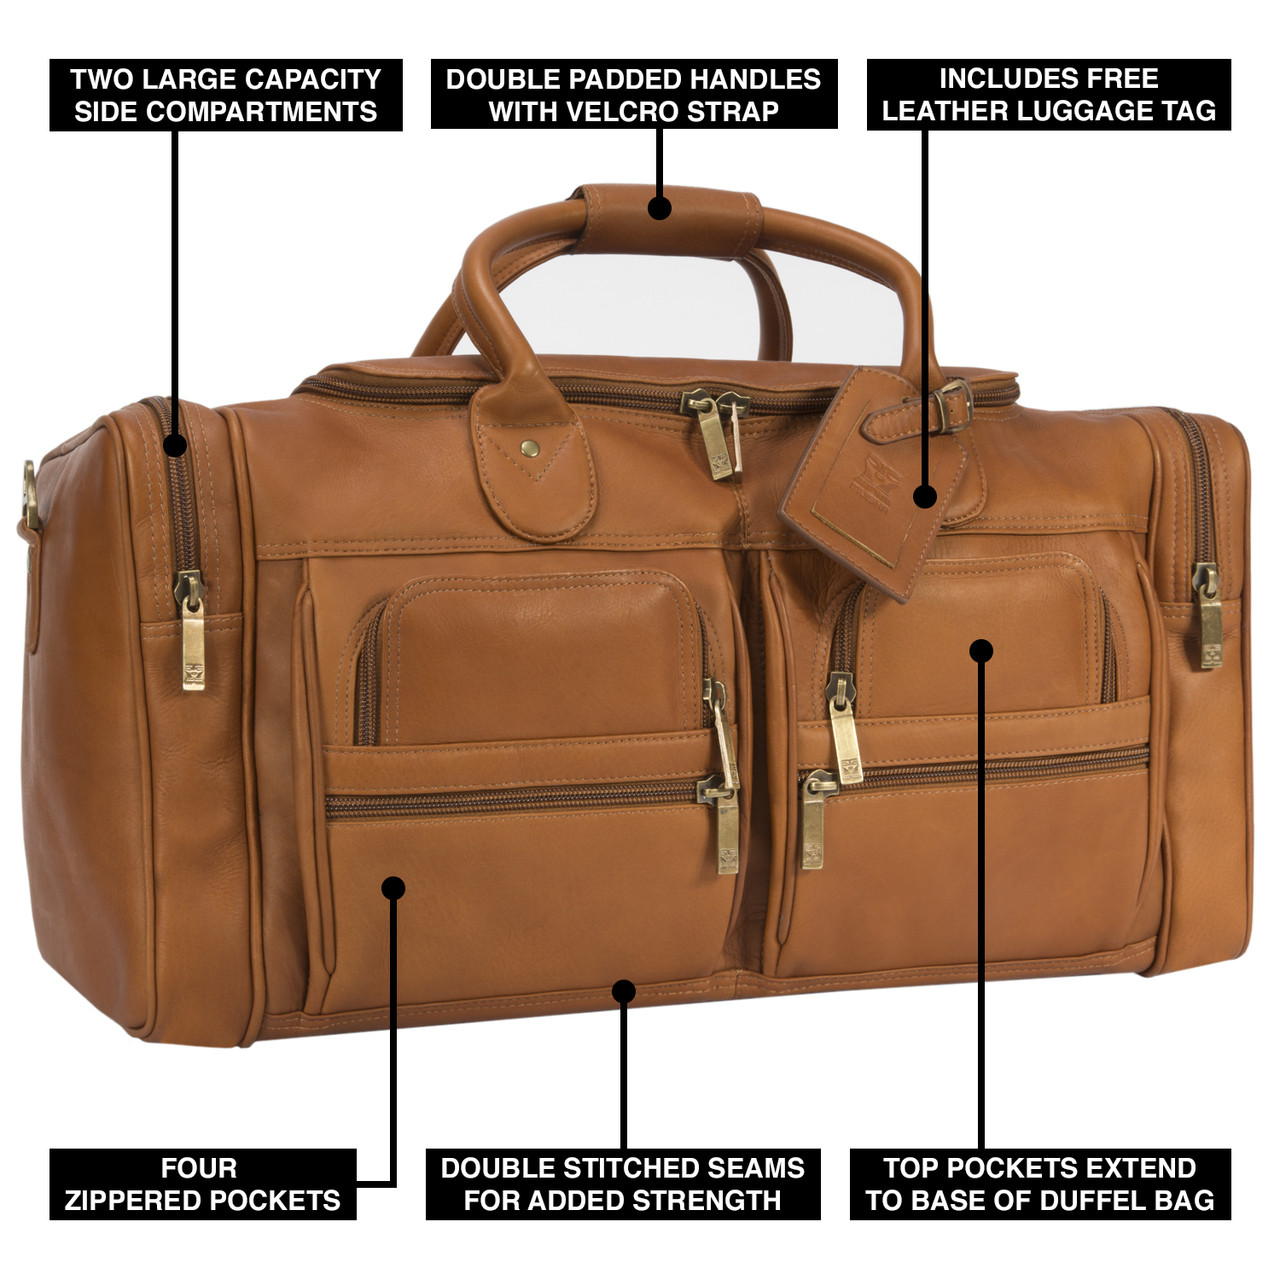 Muiska - New York - 22-inch Leather Weekend Duffel Bag features two large front pockets with two zippered pouches